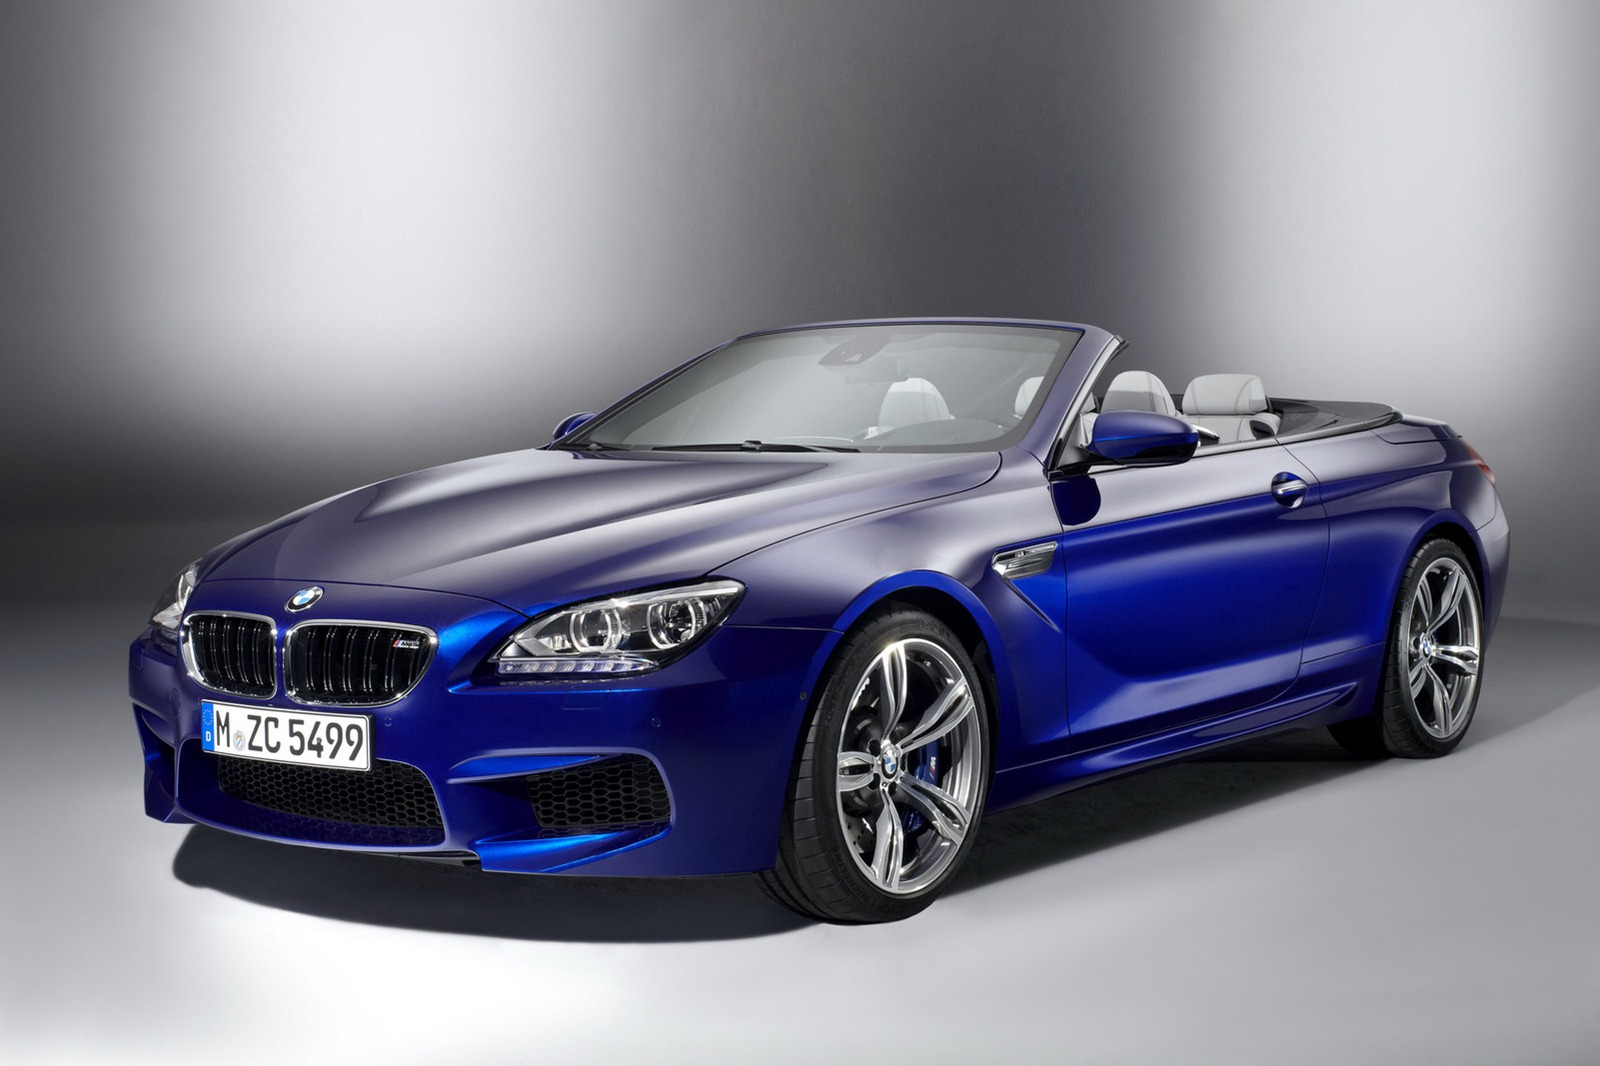 BMW M6 Coupe And Convertible Revealed Photo Gallery Wallpapers Download Wallpaper